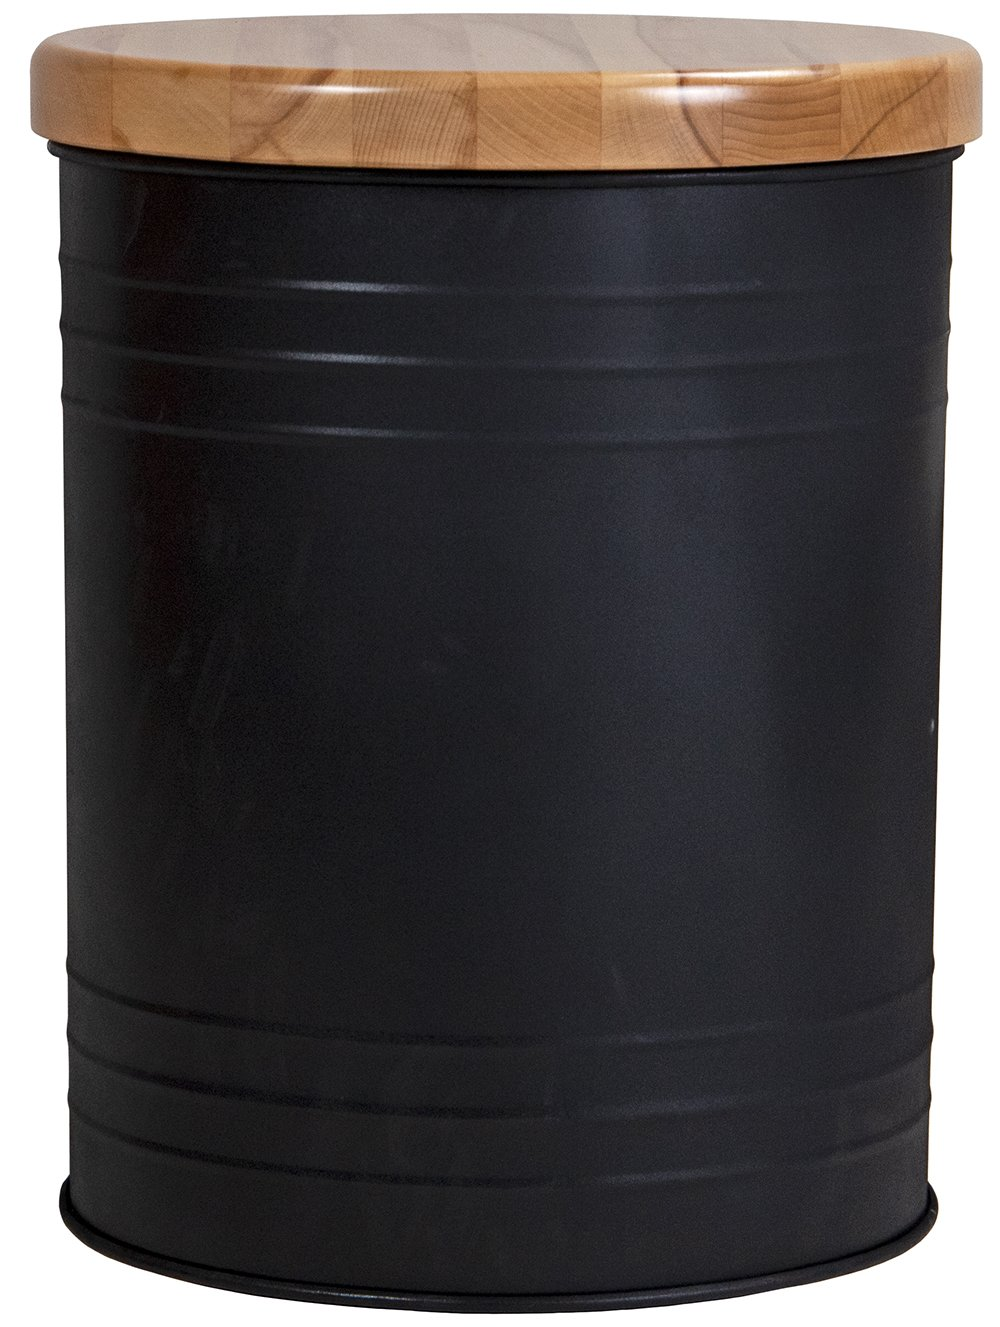 Beer Keg Low Stool